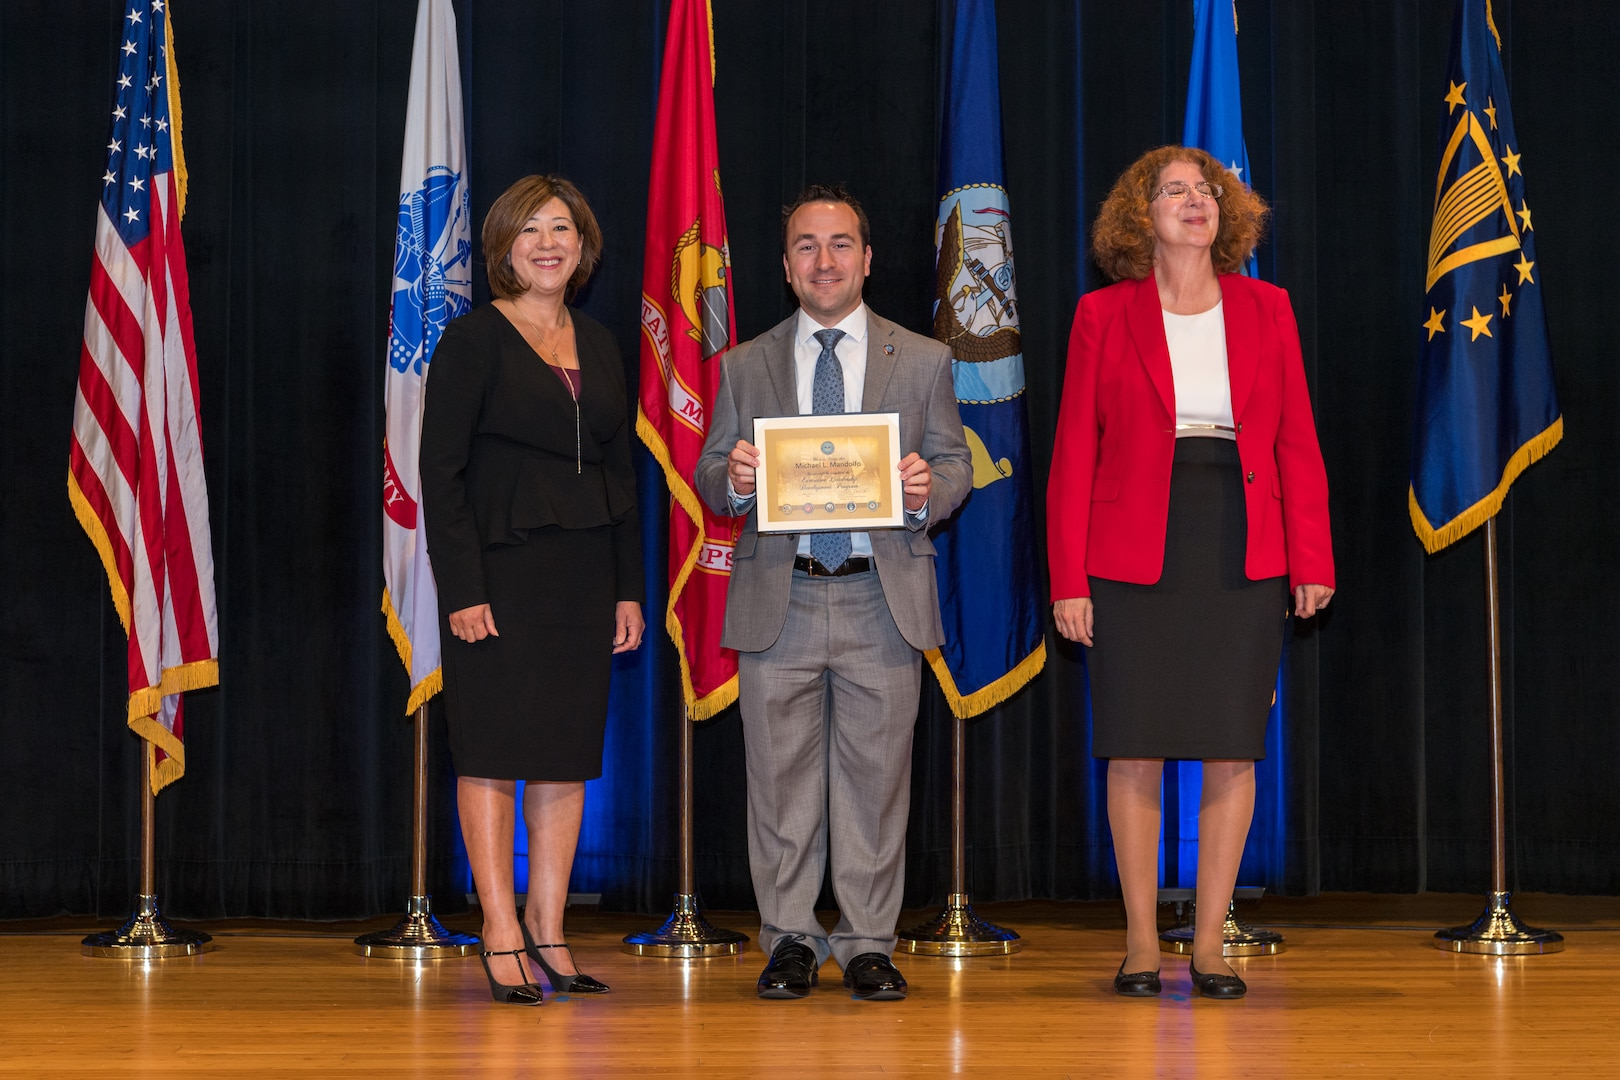 3 individuals pose with one in center holding diploma